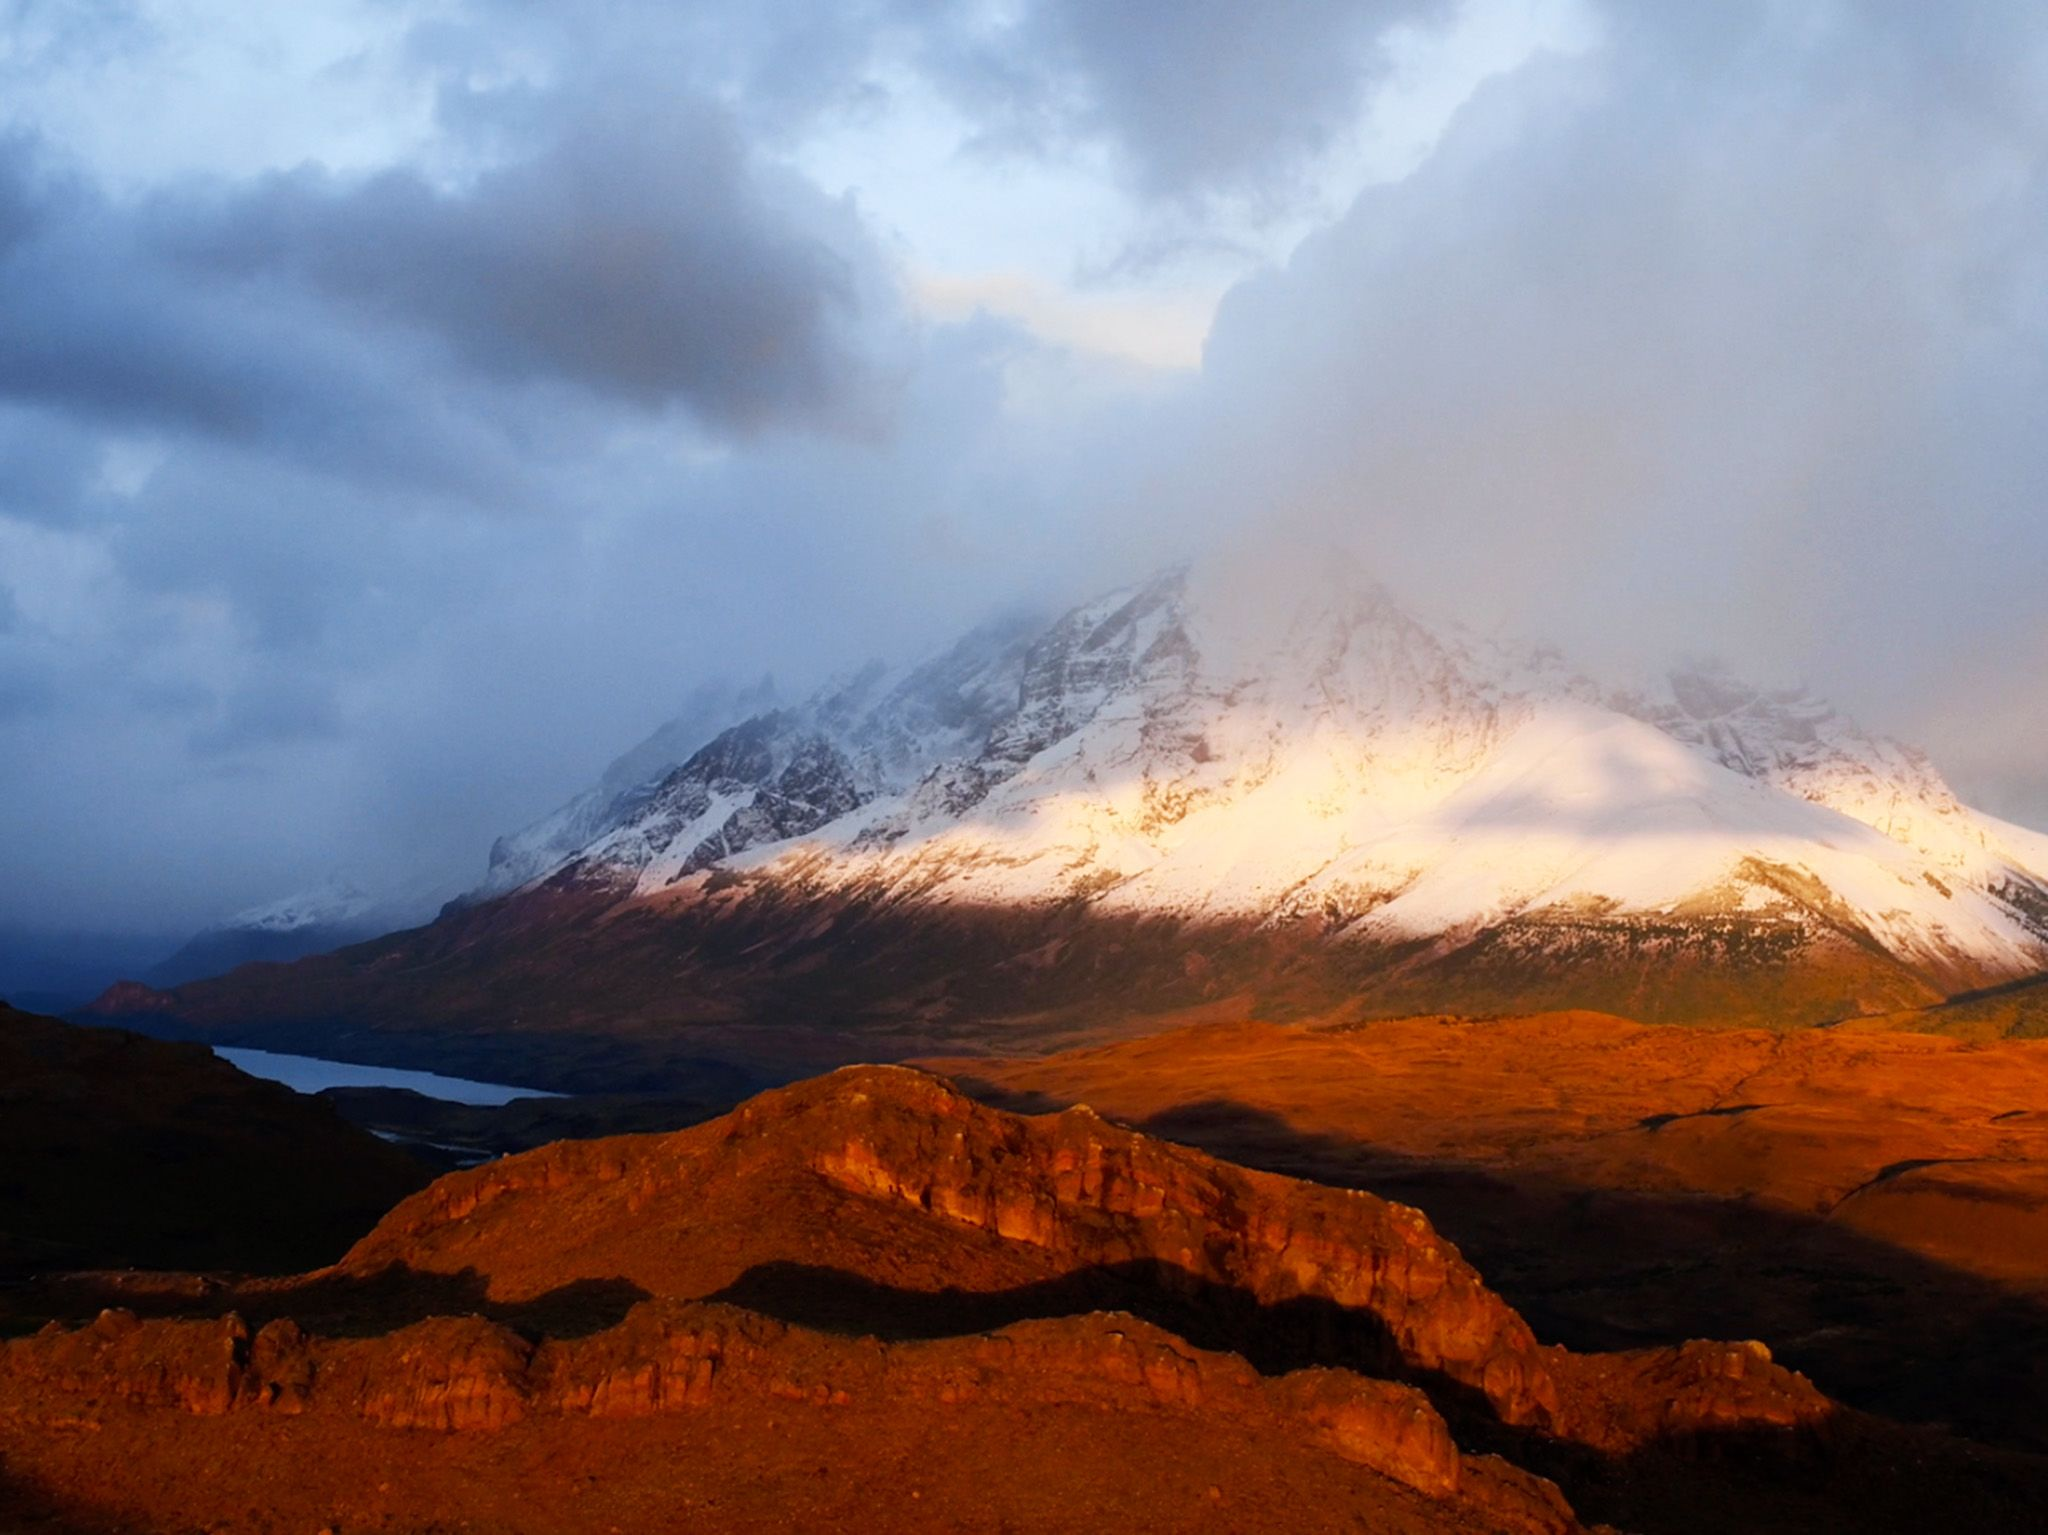 Torres del Paine mountain looming in the distance. This image is from Man vs. Puma. [Photo of the day - November 2020]